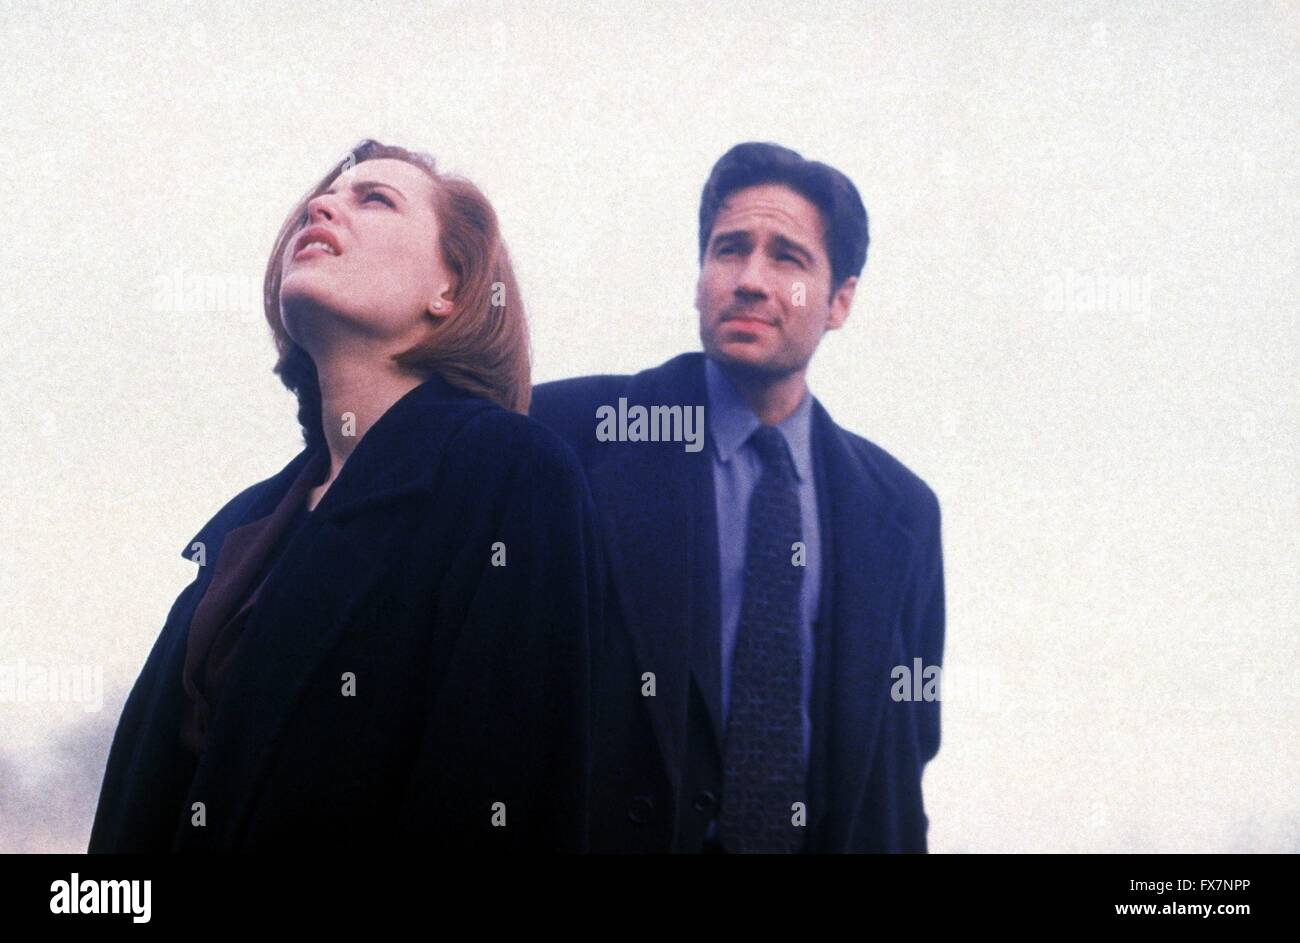 The X Files TV Series 1993 - 2002 USA 1996 Season 4 Created by Chris Carter David Duchovny , Gillian Anderson - Stock Image